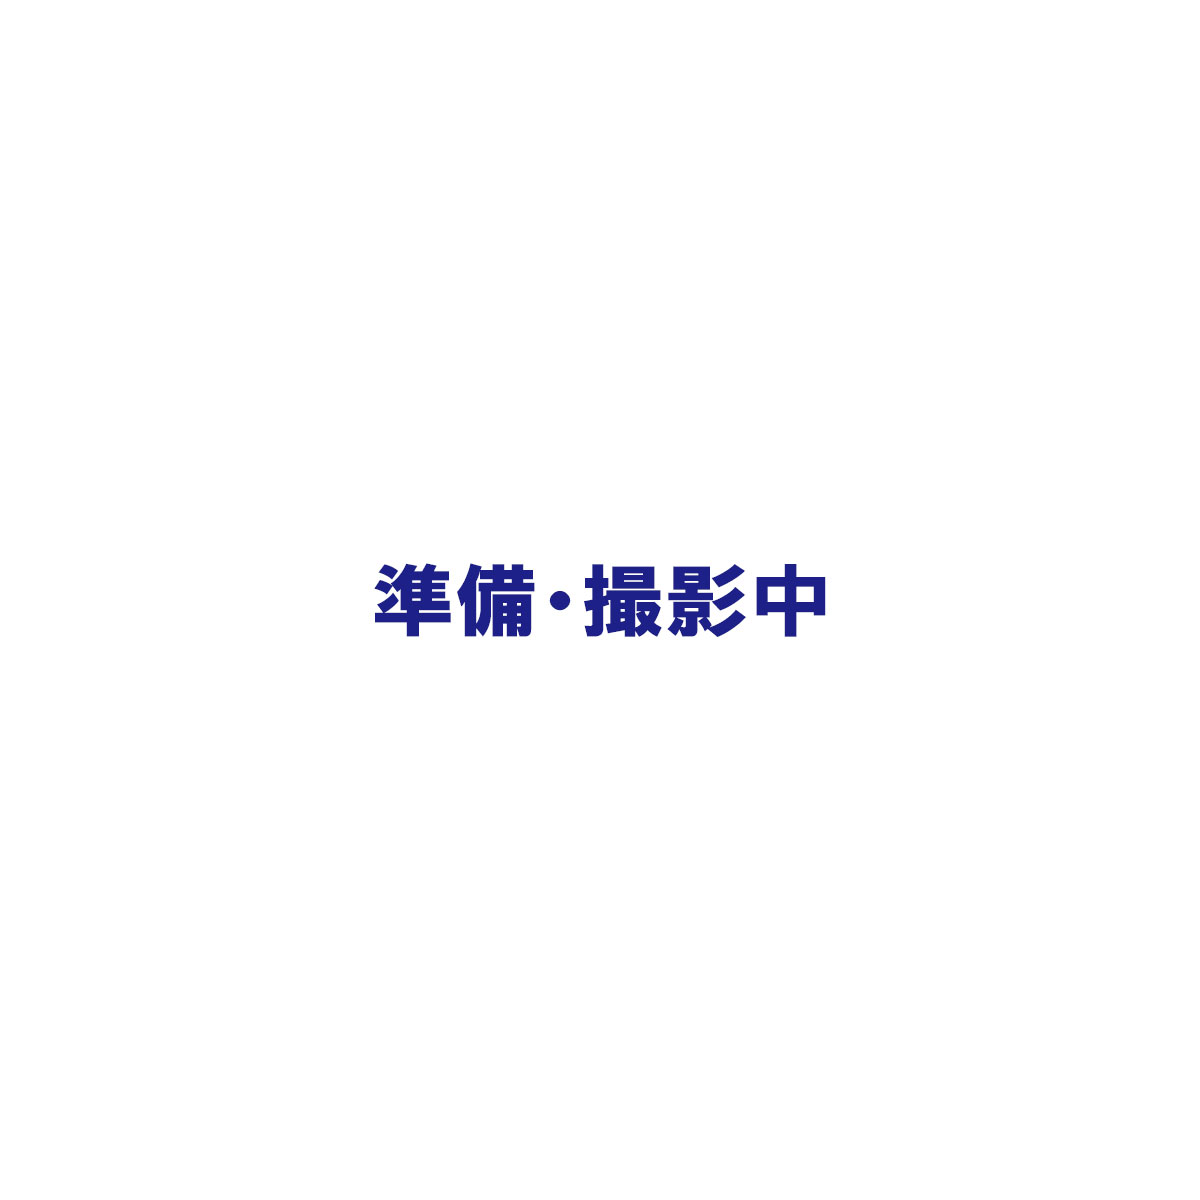 4fd2feb81e Champion CHAMPION regular article Urban Outfitters men pullover parka URBAN  OUTFITTERS EXCLUSIVE REVERSE WEAVE HOODIE SWEATSHIRT LIME GREEN